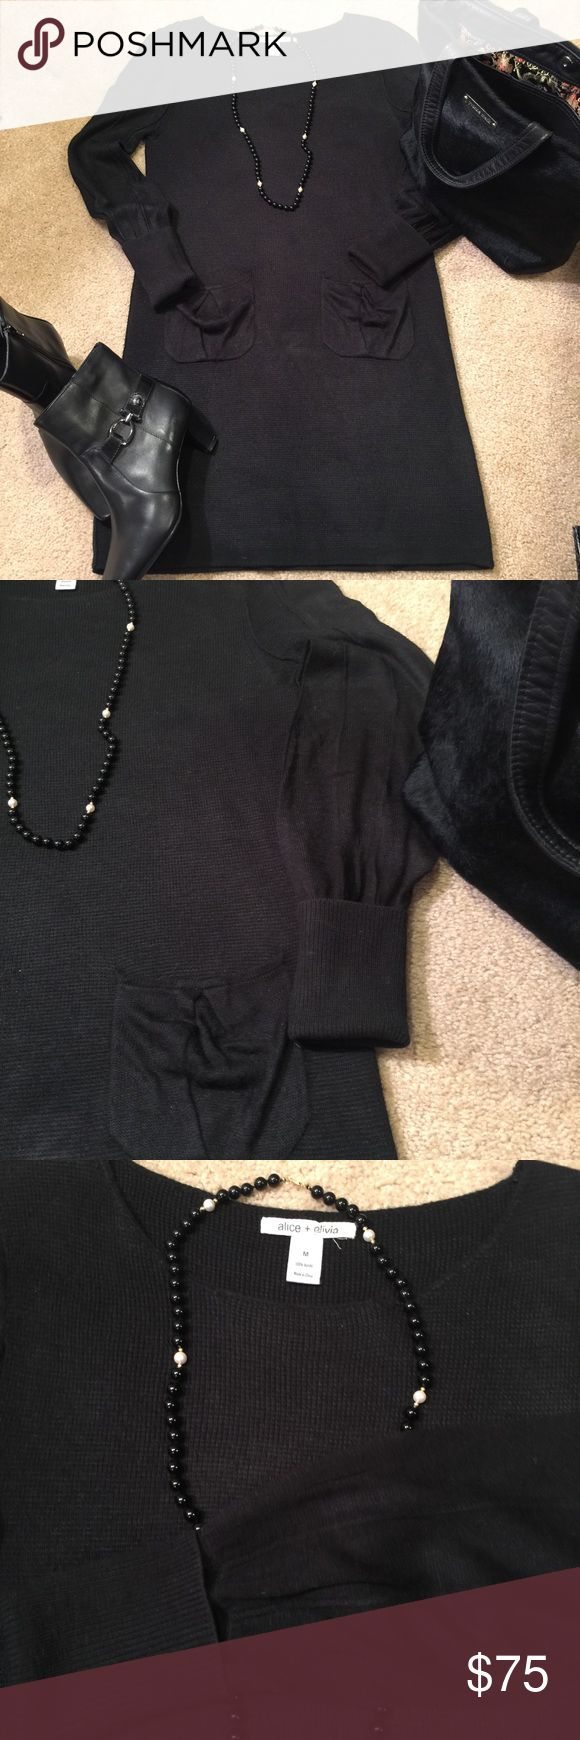 Alice $ Olivia Black Sweater Dress Very cute sweater dress. Has two front pockets. The sleeves have a different pattern than the dress. Sleeves role up to make a cuff. Material is 100% acrylic. Alice + Olivia Dresses Long Sleeve